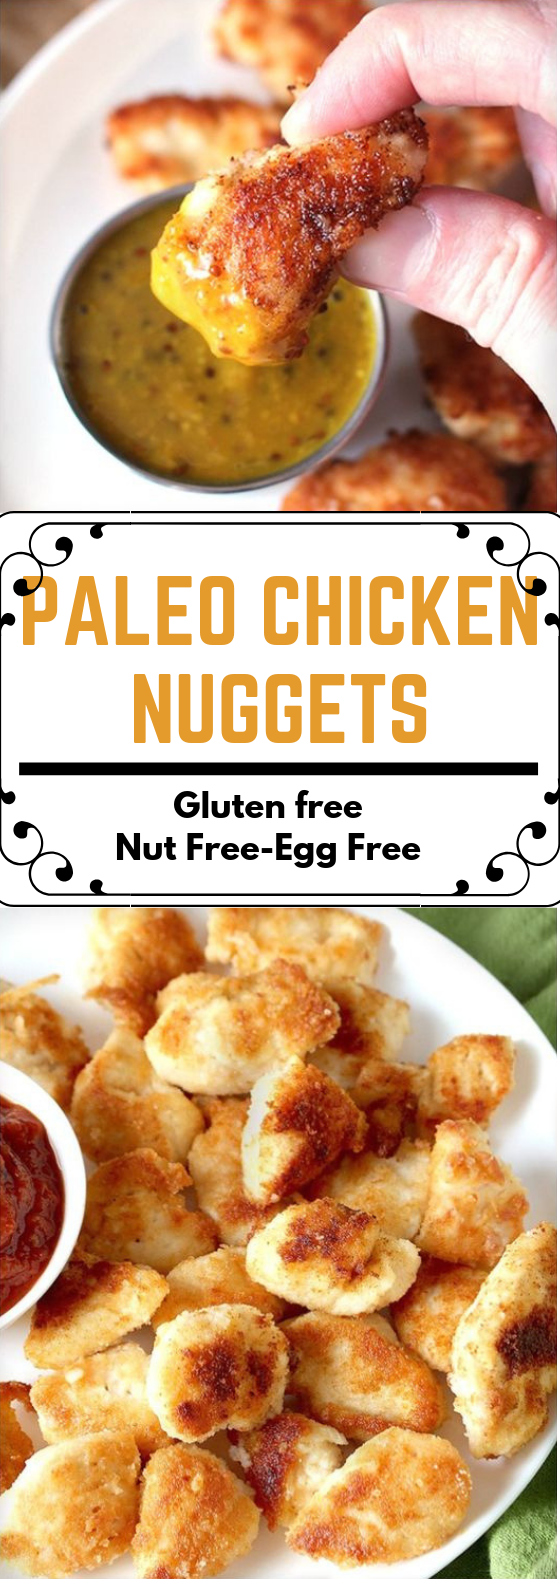 PALEO CHICKEN NUGGETS #DietFood #Glutenfree